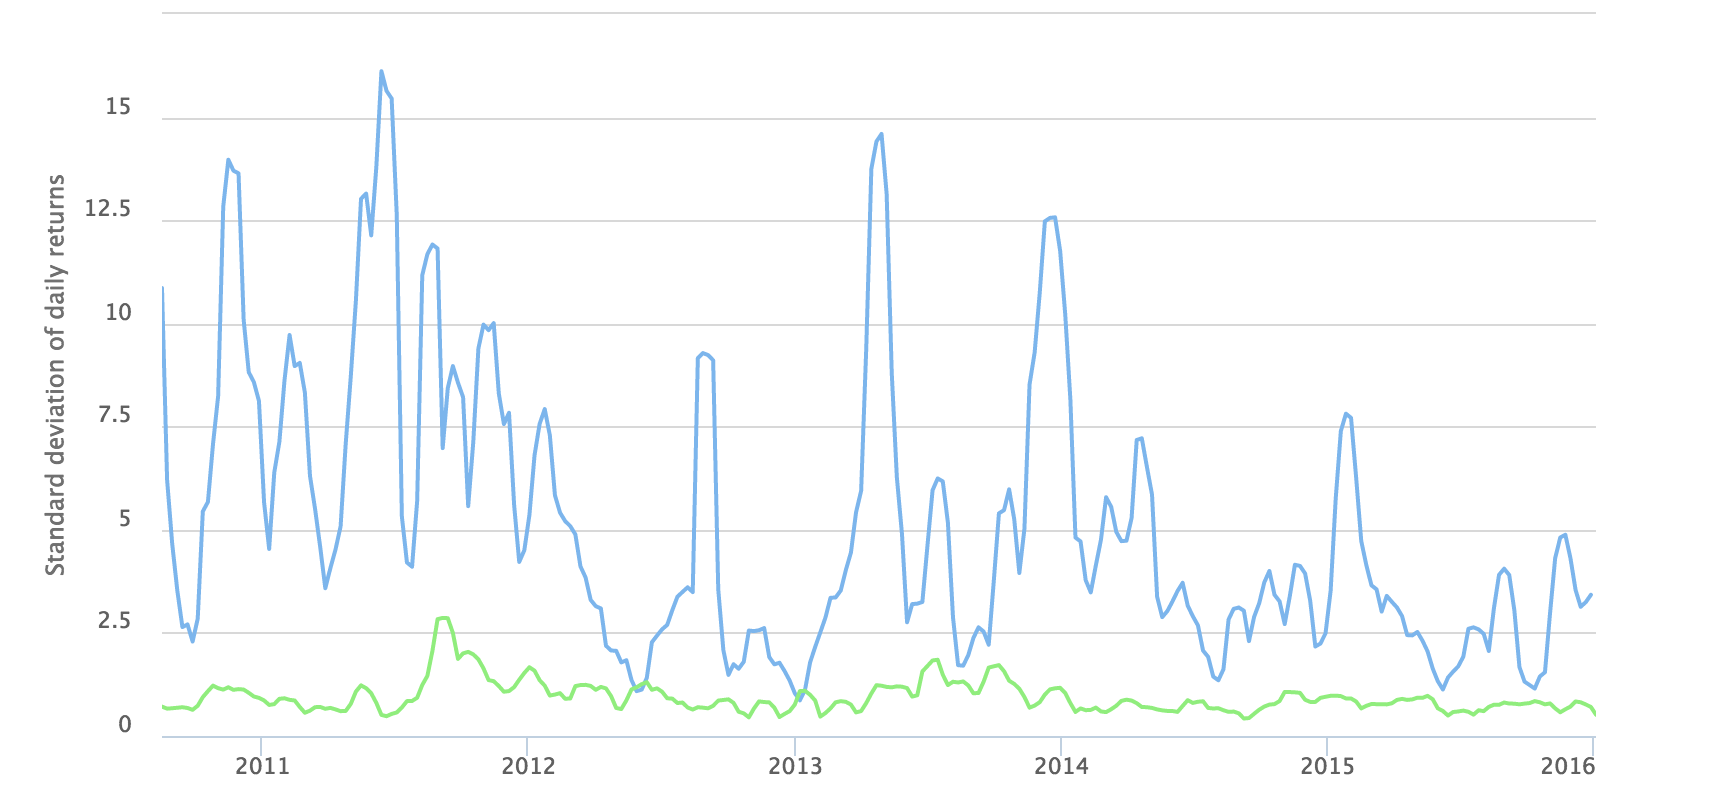 30-Day BTC/USD Volatility (Blue) vs. 30-Day Gold/USD Volatility (Green)